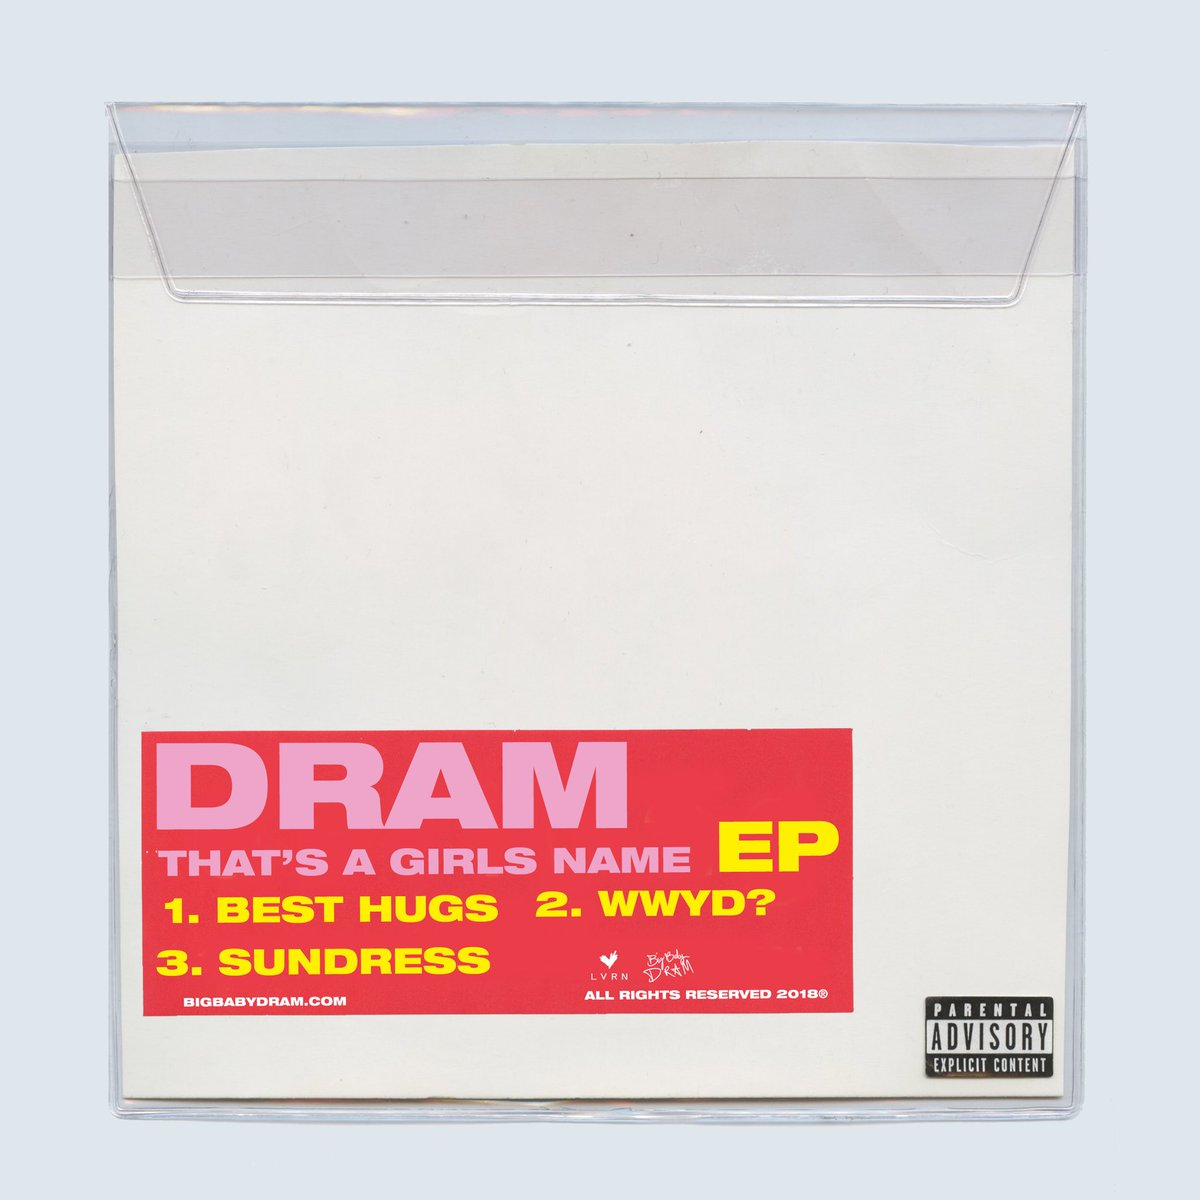 🔥 @BIGBABYDRAM drops three-track EP 'That's a Girls Name.' Listen: trib.al/u3cpaos